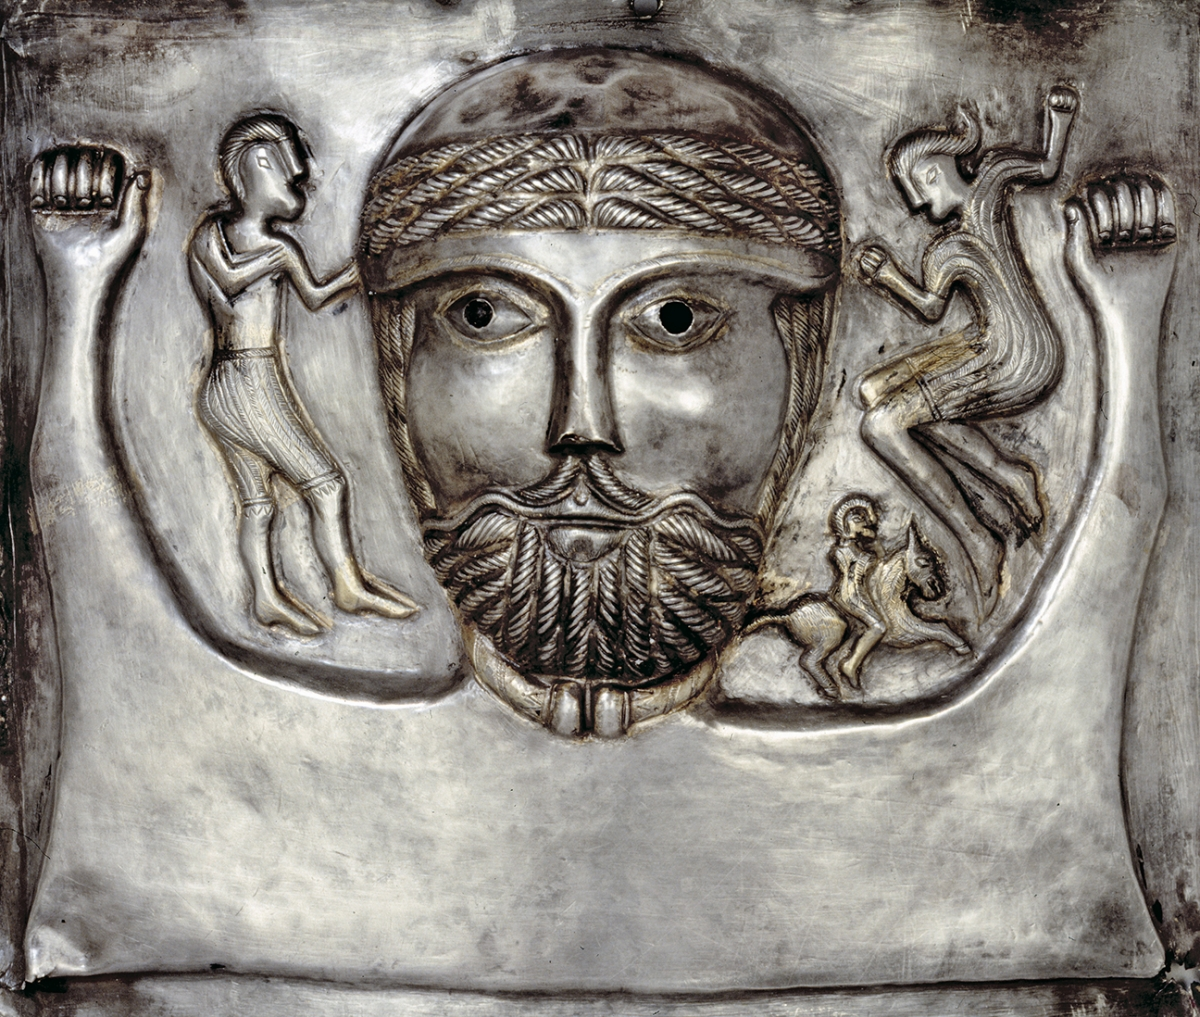 The ancient Celts: Bloodthirsty naked warriors or lovers of fine arts?